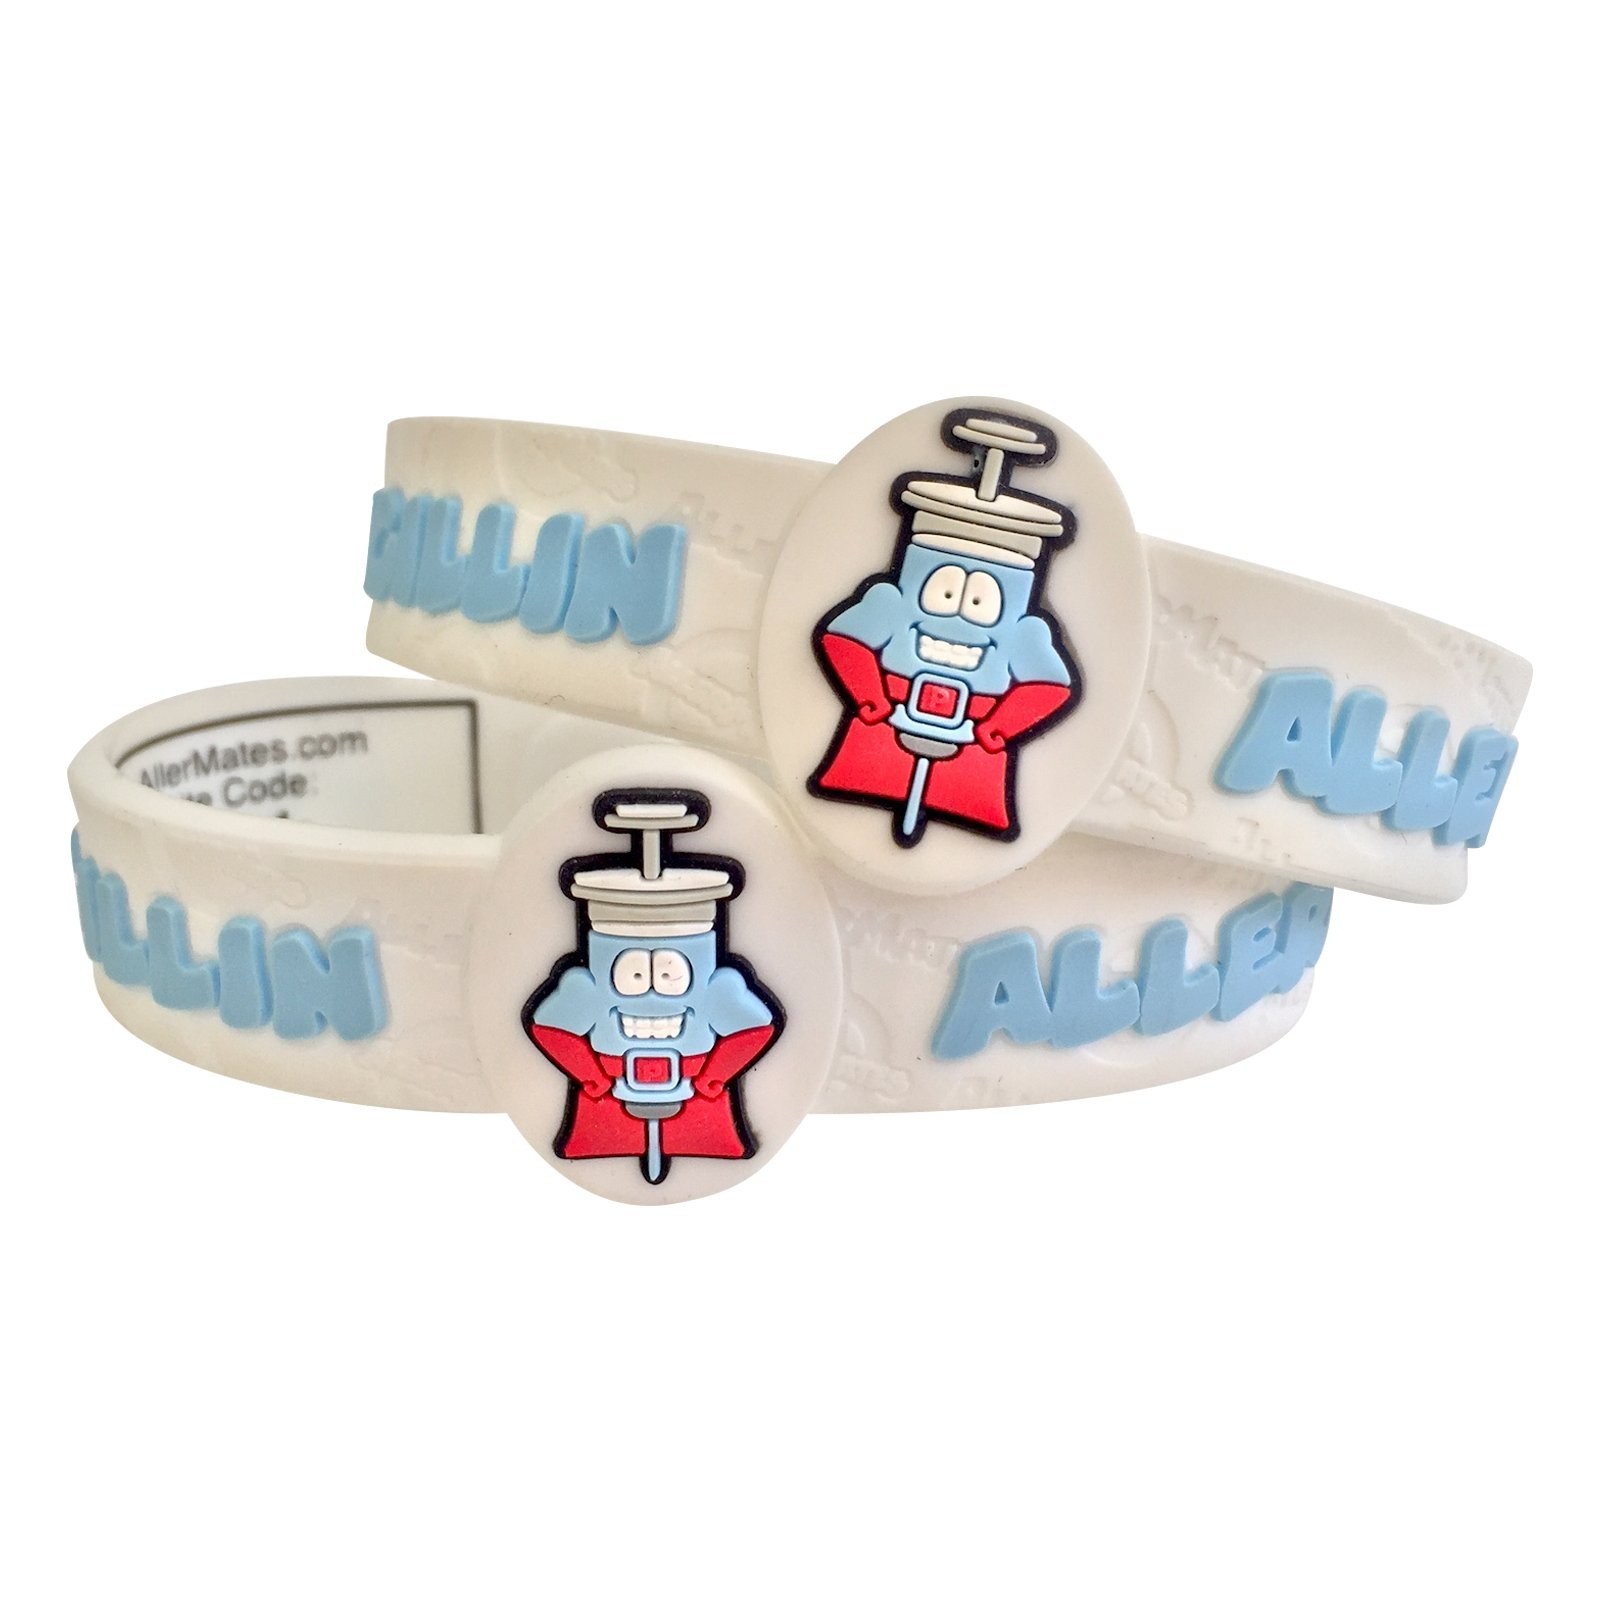 AllerMates Kids Medical Wristband - Penicillin